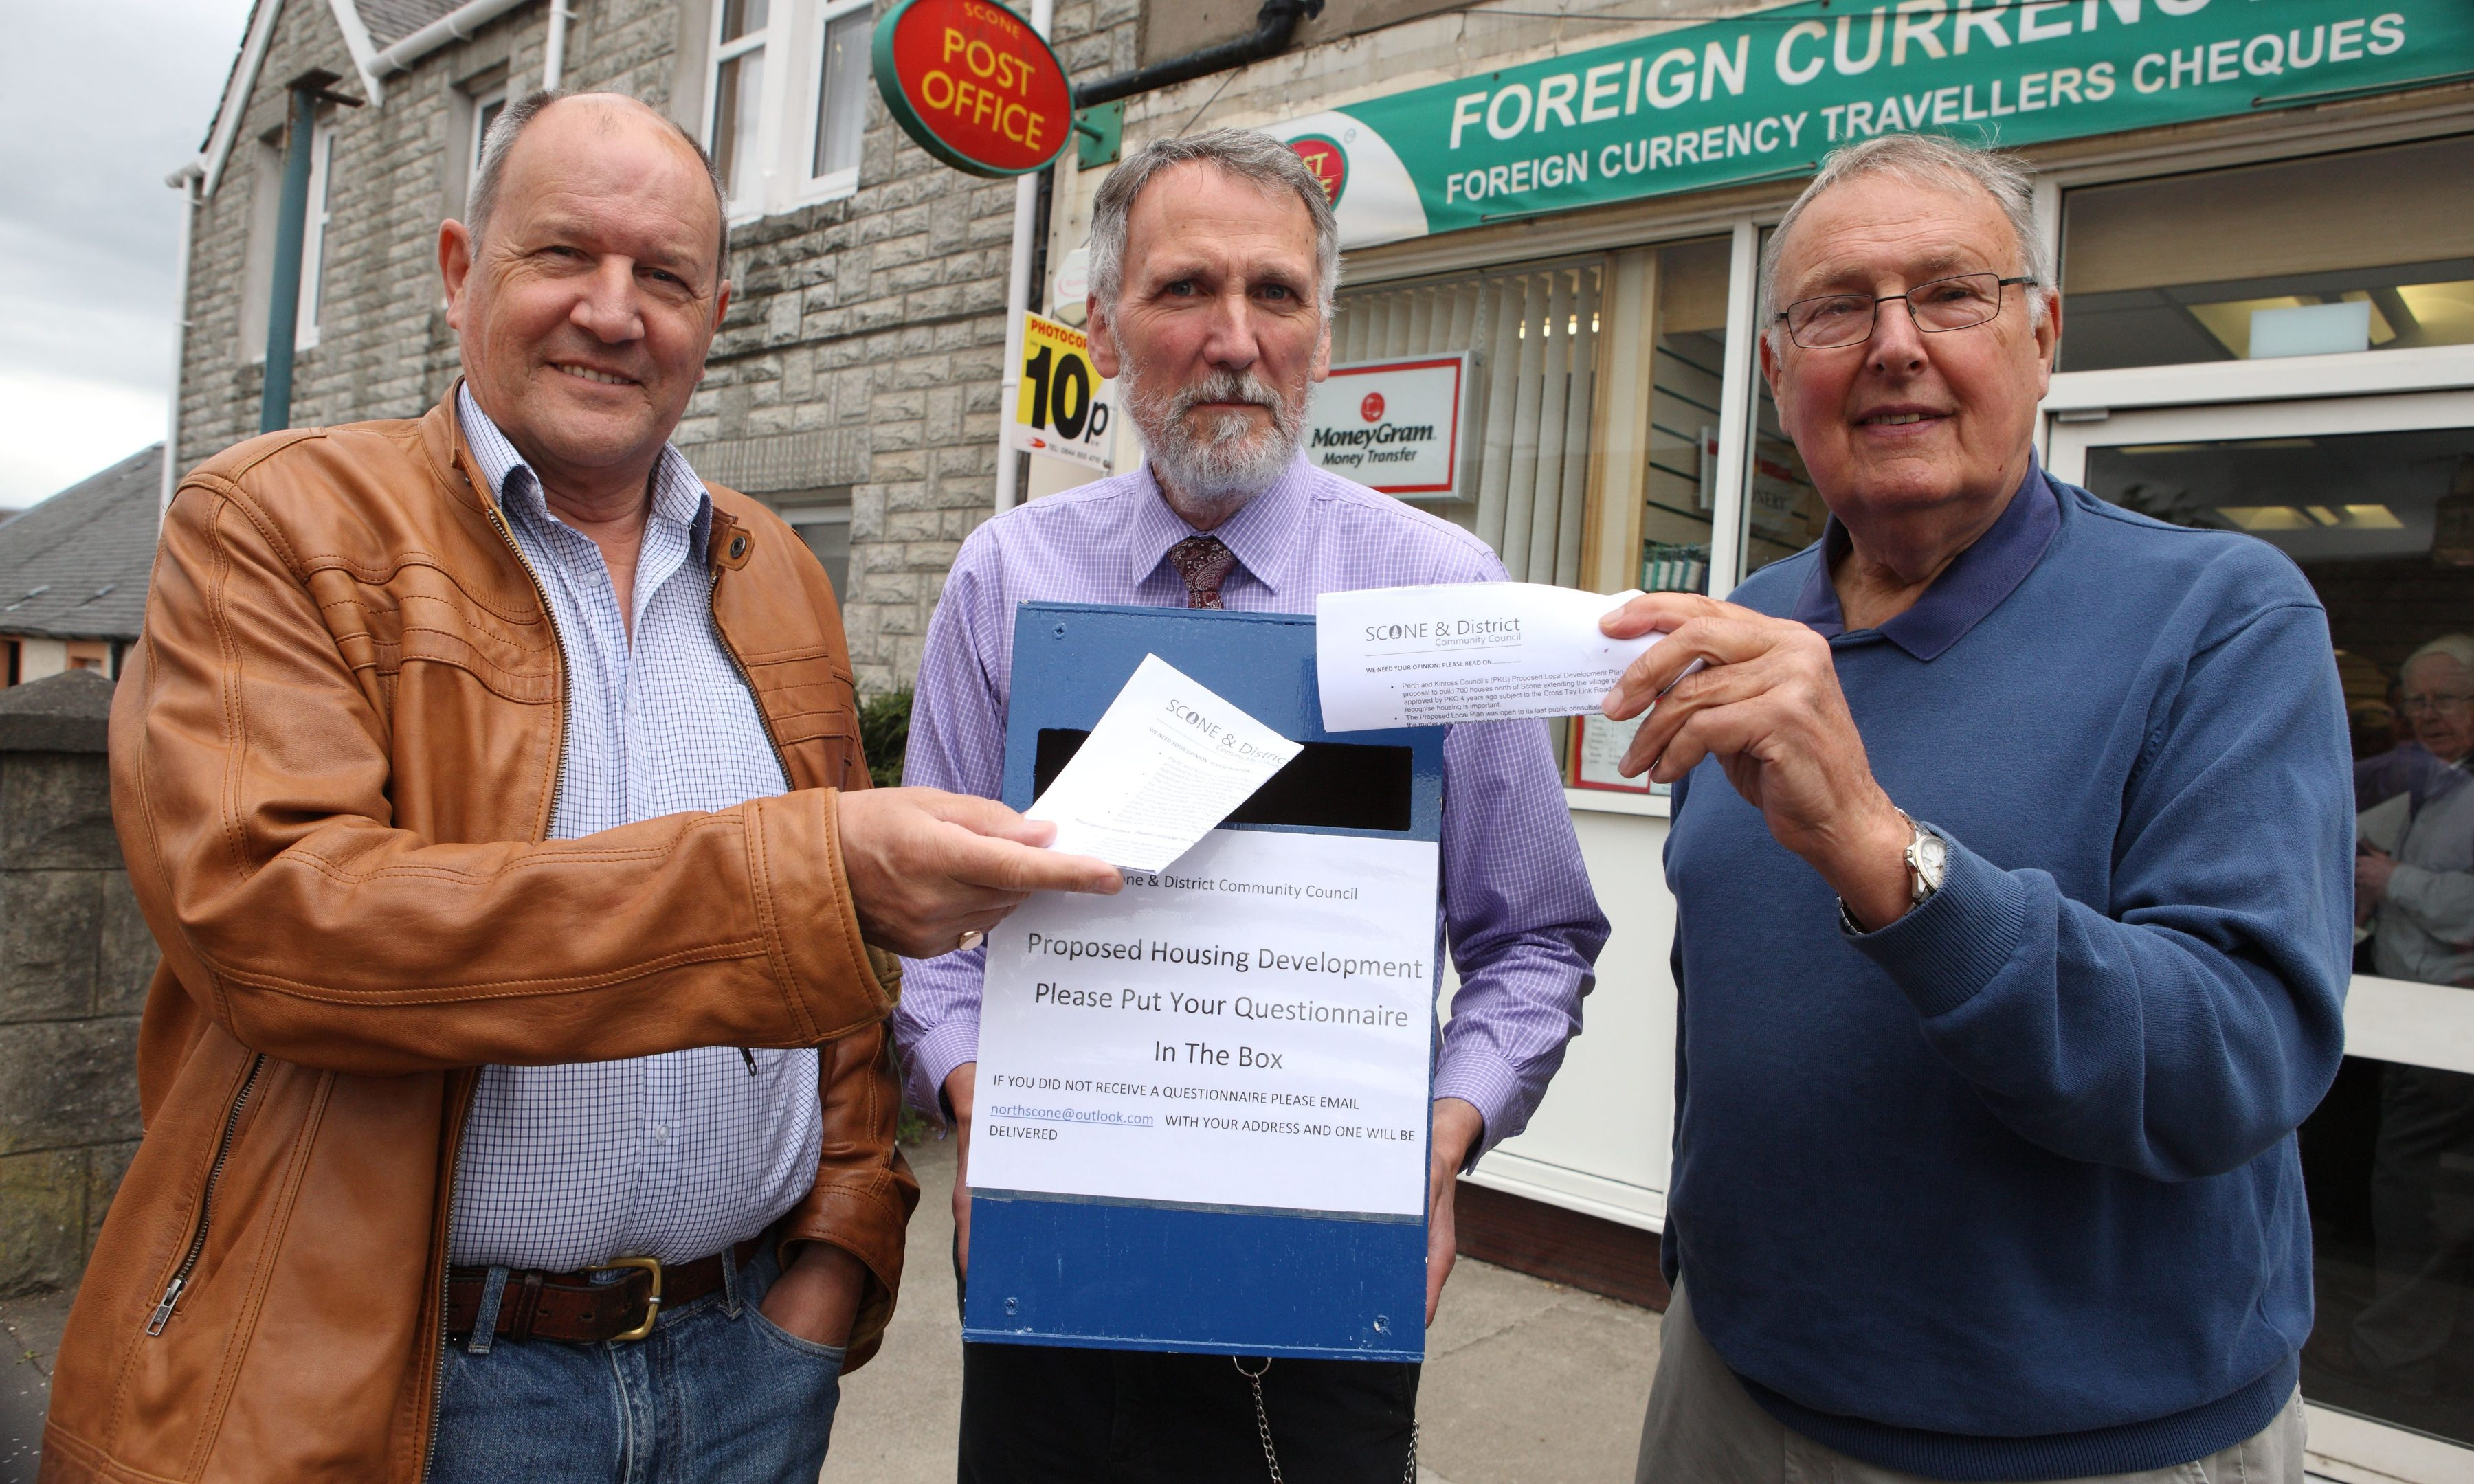 Martin Rhodes,Scone Study Group, Councillor Lewis Simpson and David Dykes, Scone and District Community Council, at Scone Post office